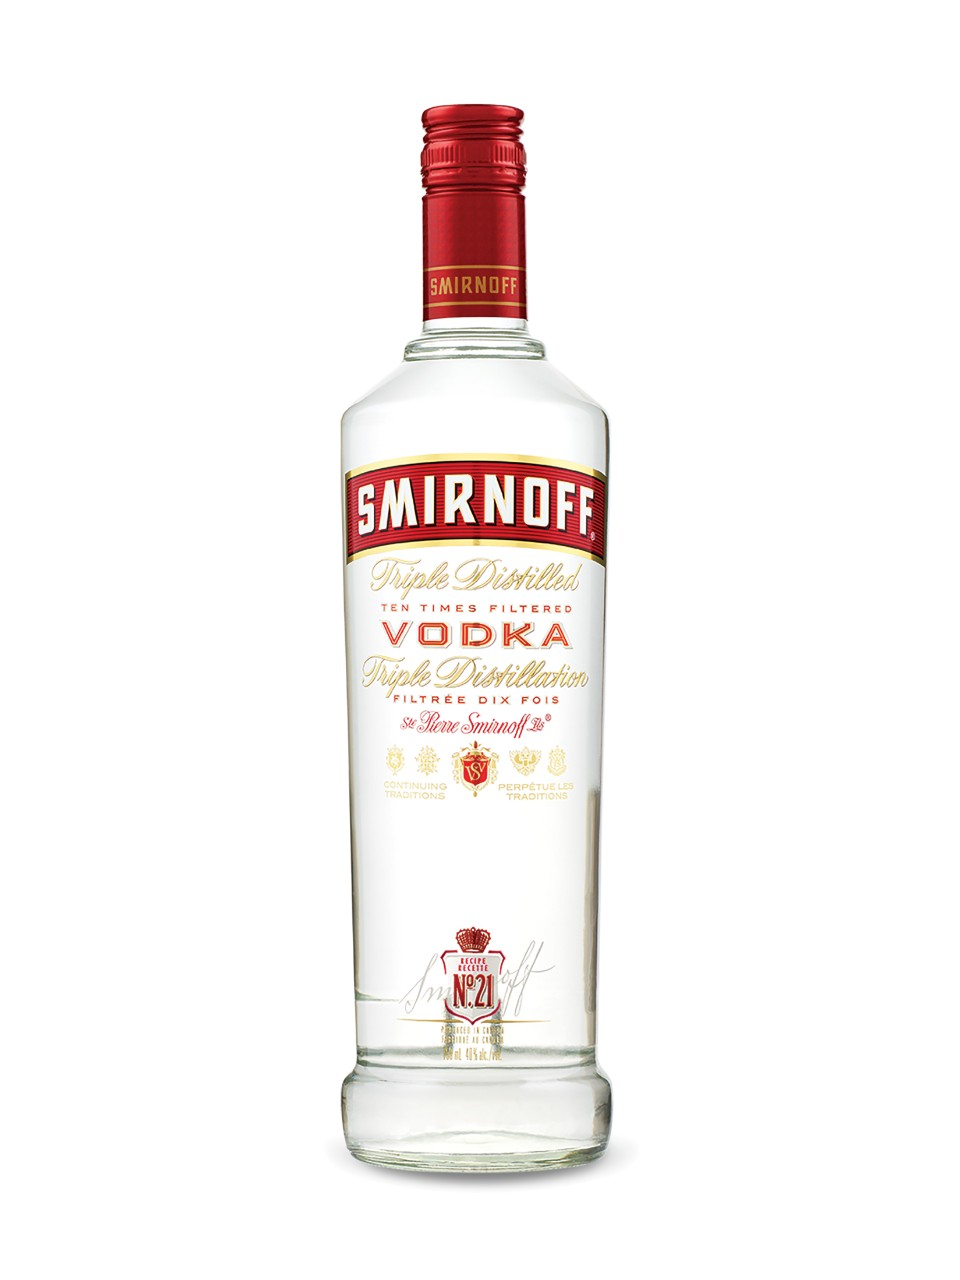 High Resolution Wallpaper | Vodka 960x1280 px